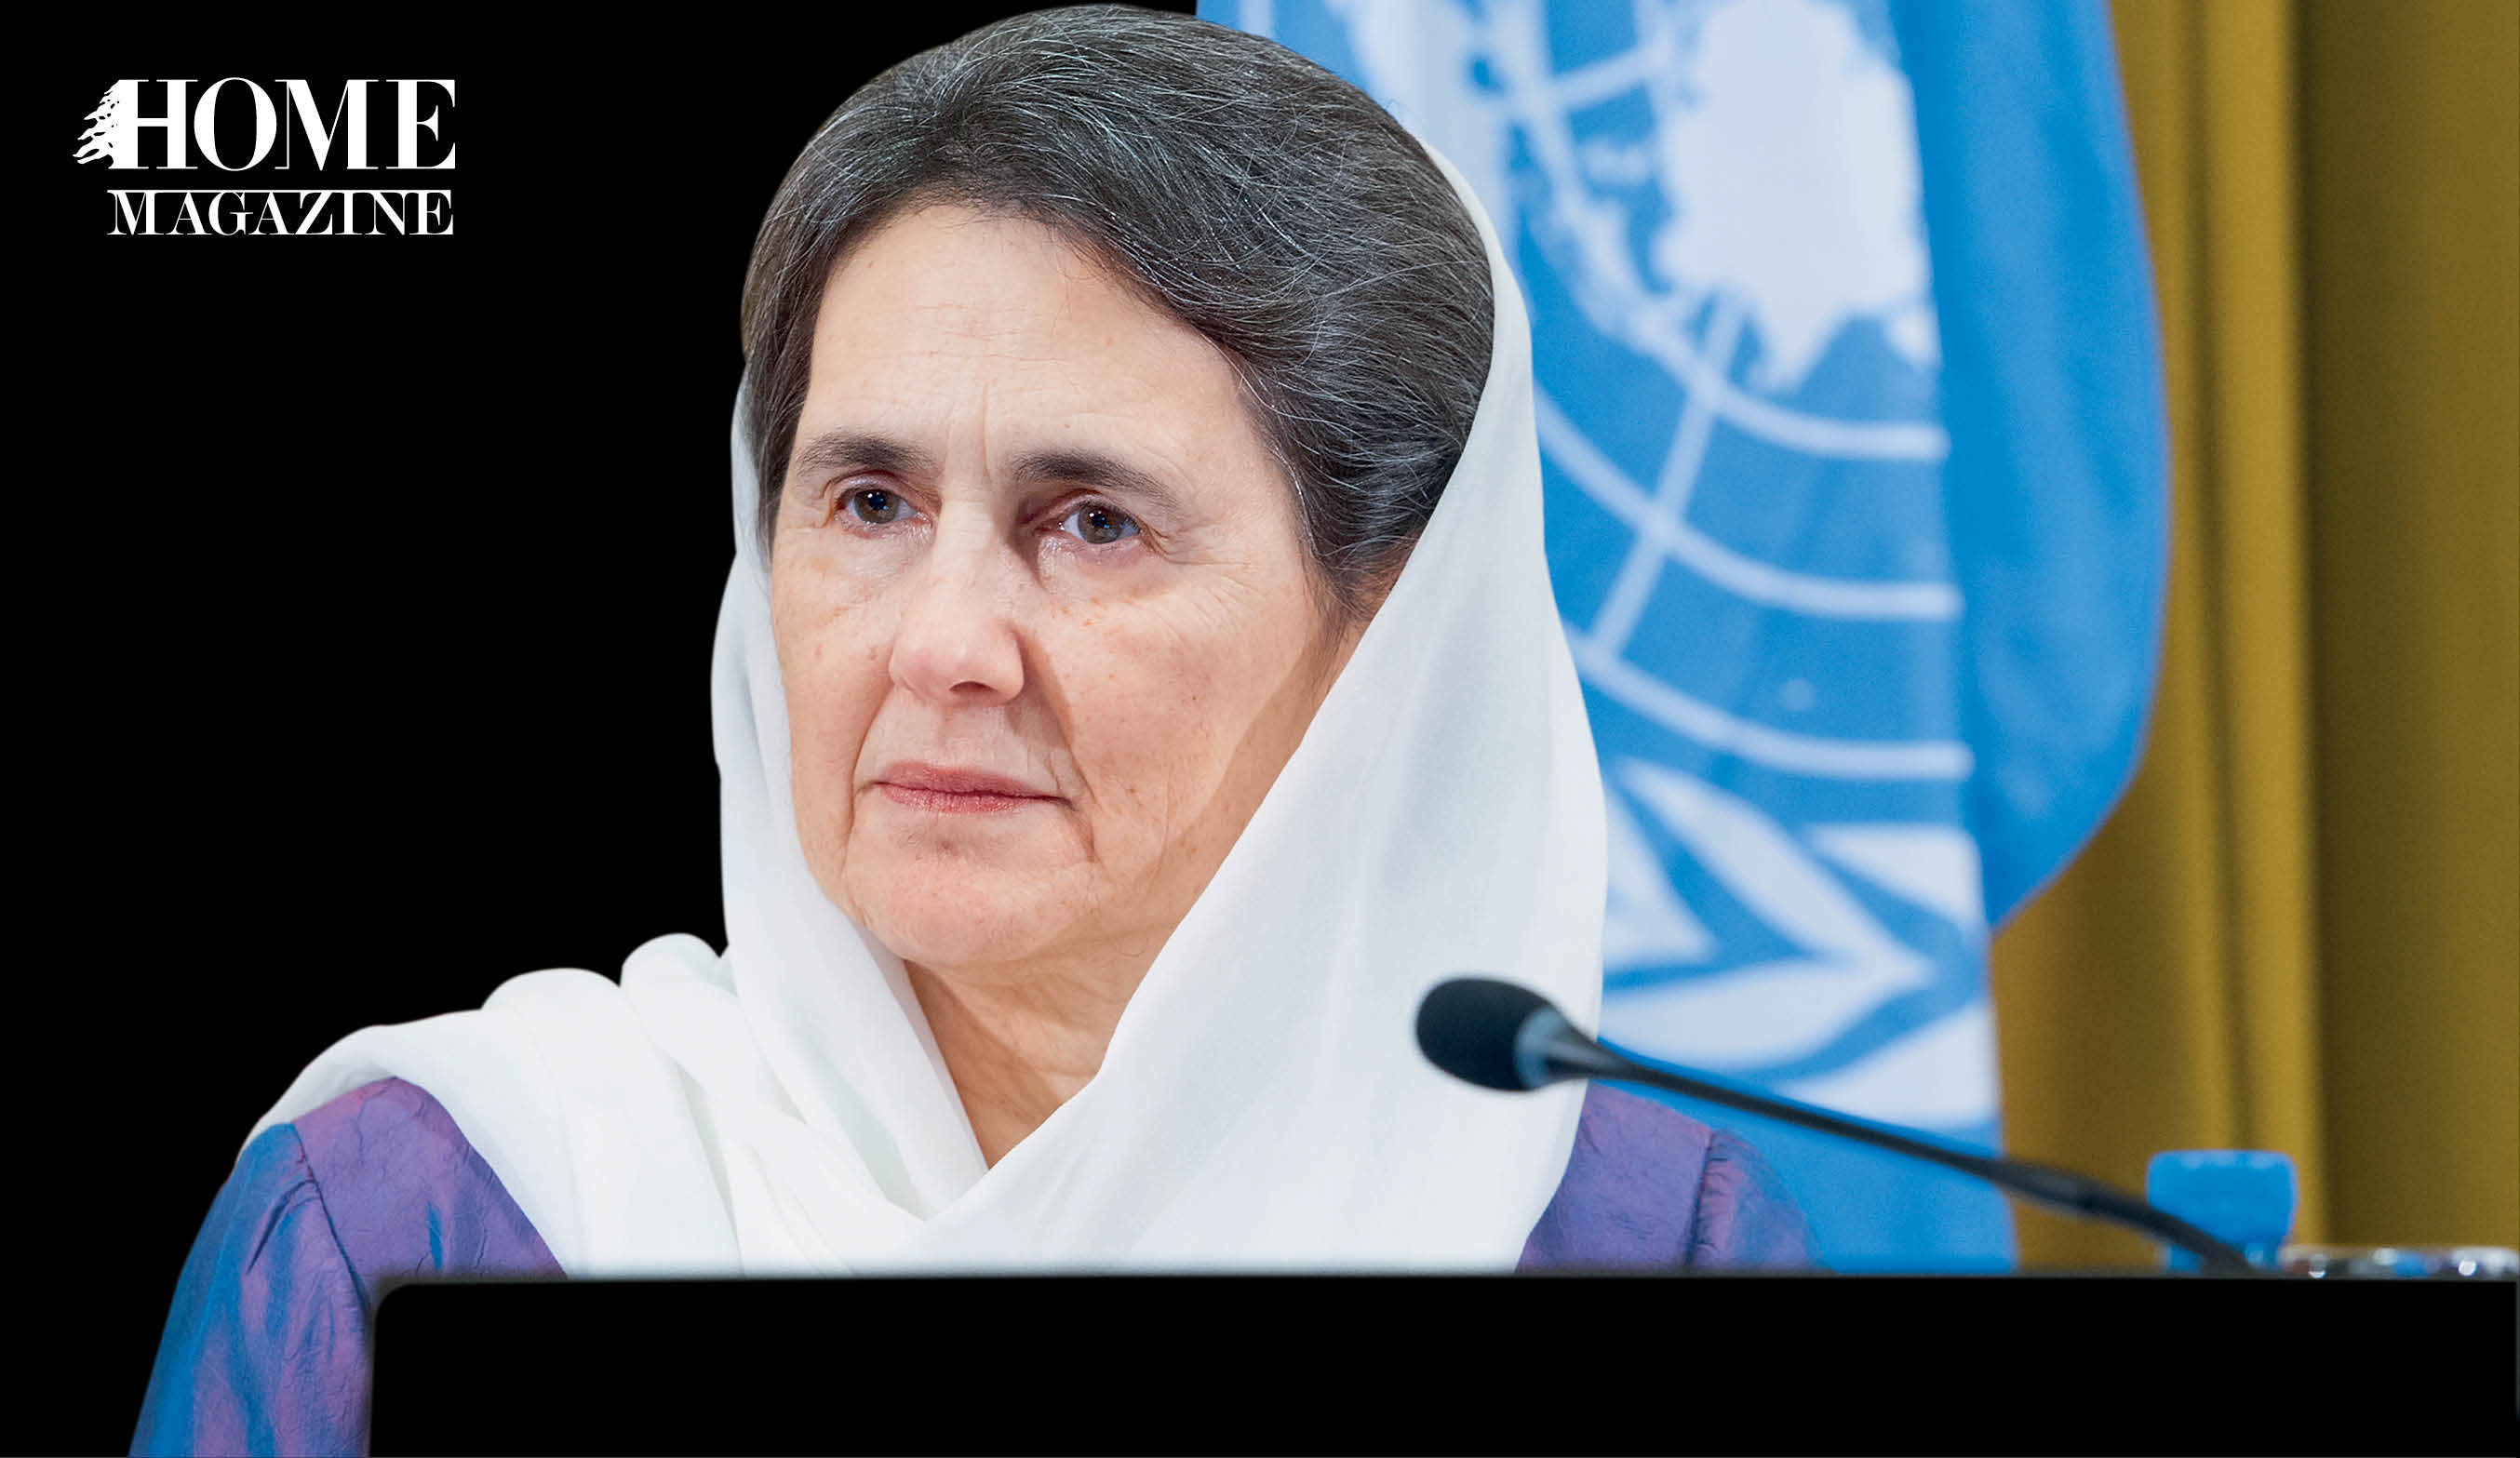 Walking with Purpose, HOME Interviews Her Excellency, First Lady of Afghanistan Rula Ghani